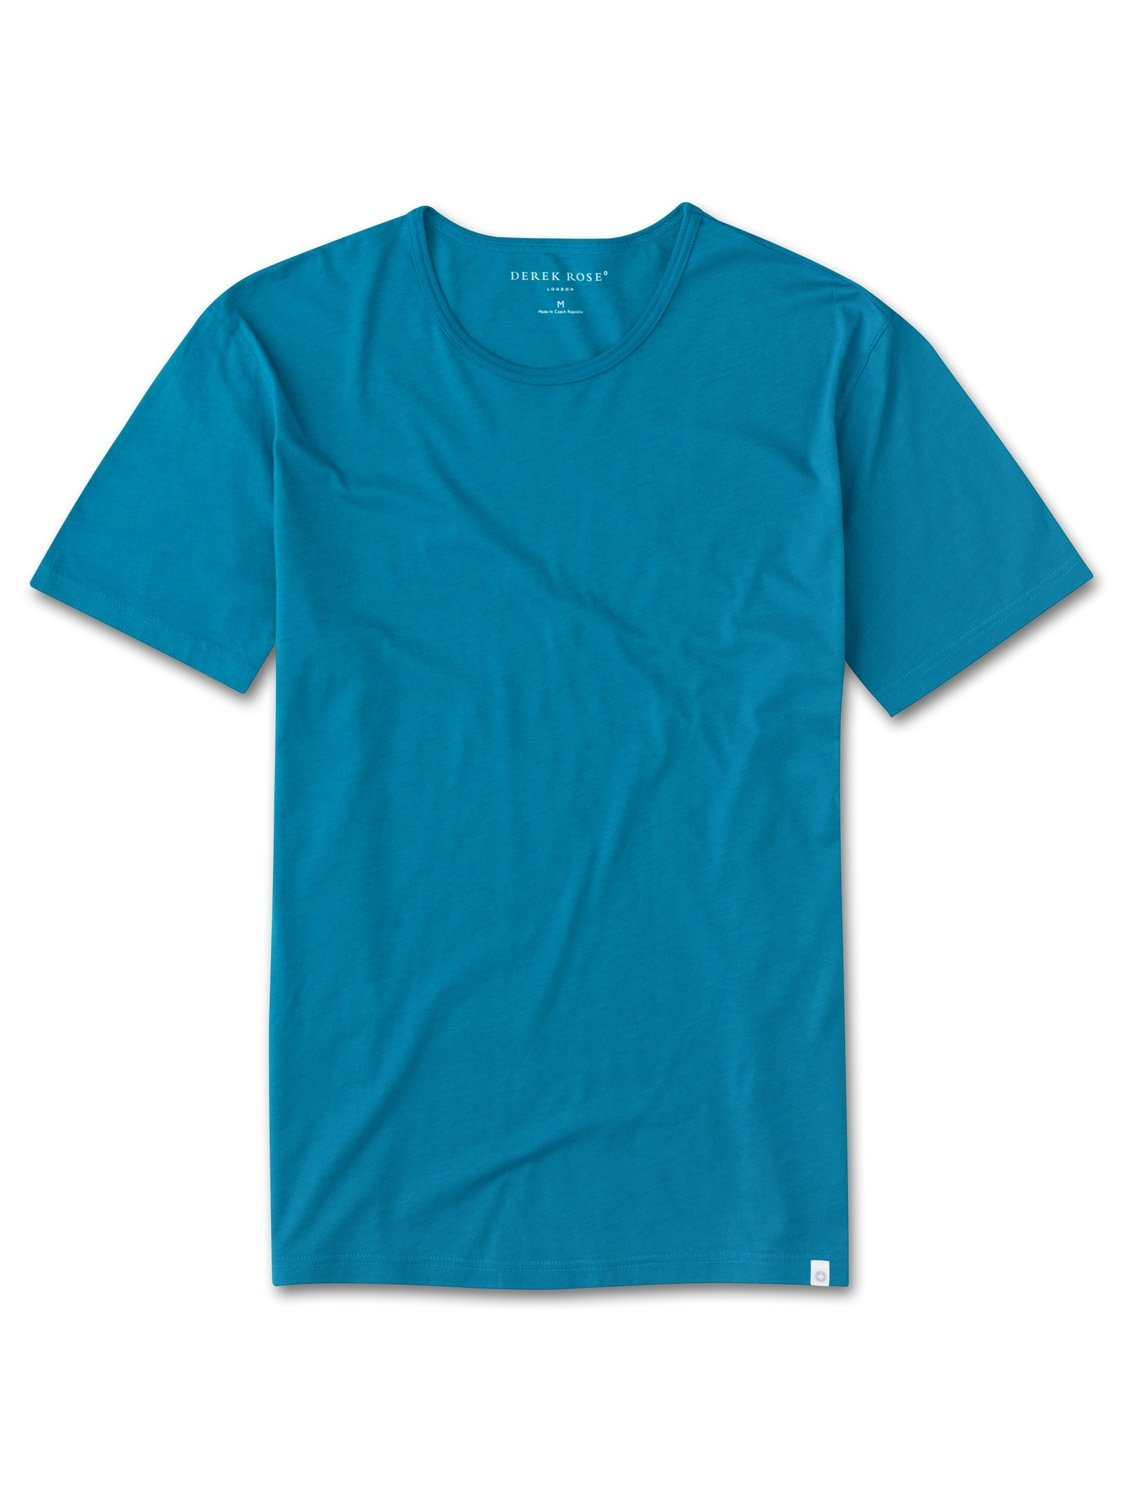 Men's Short Sleeve T-Shirt Riley 2 Pima Cotton Teal